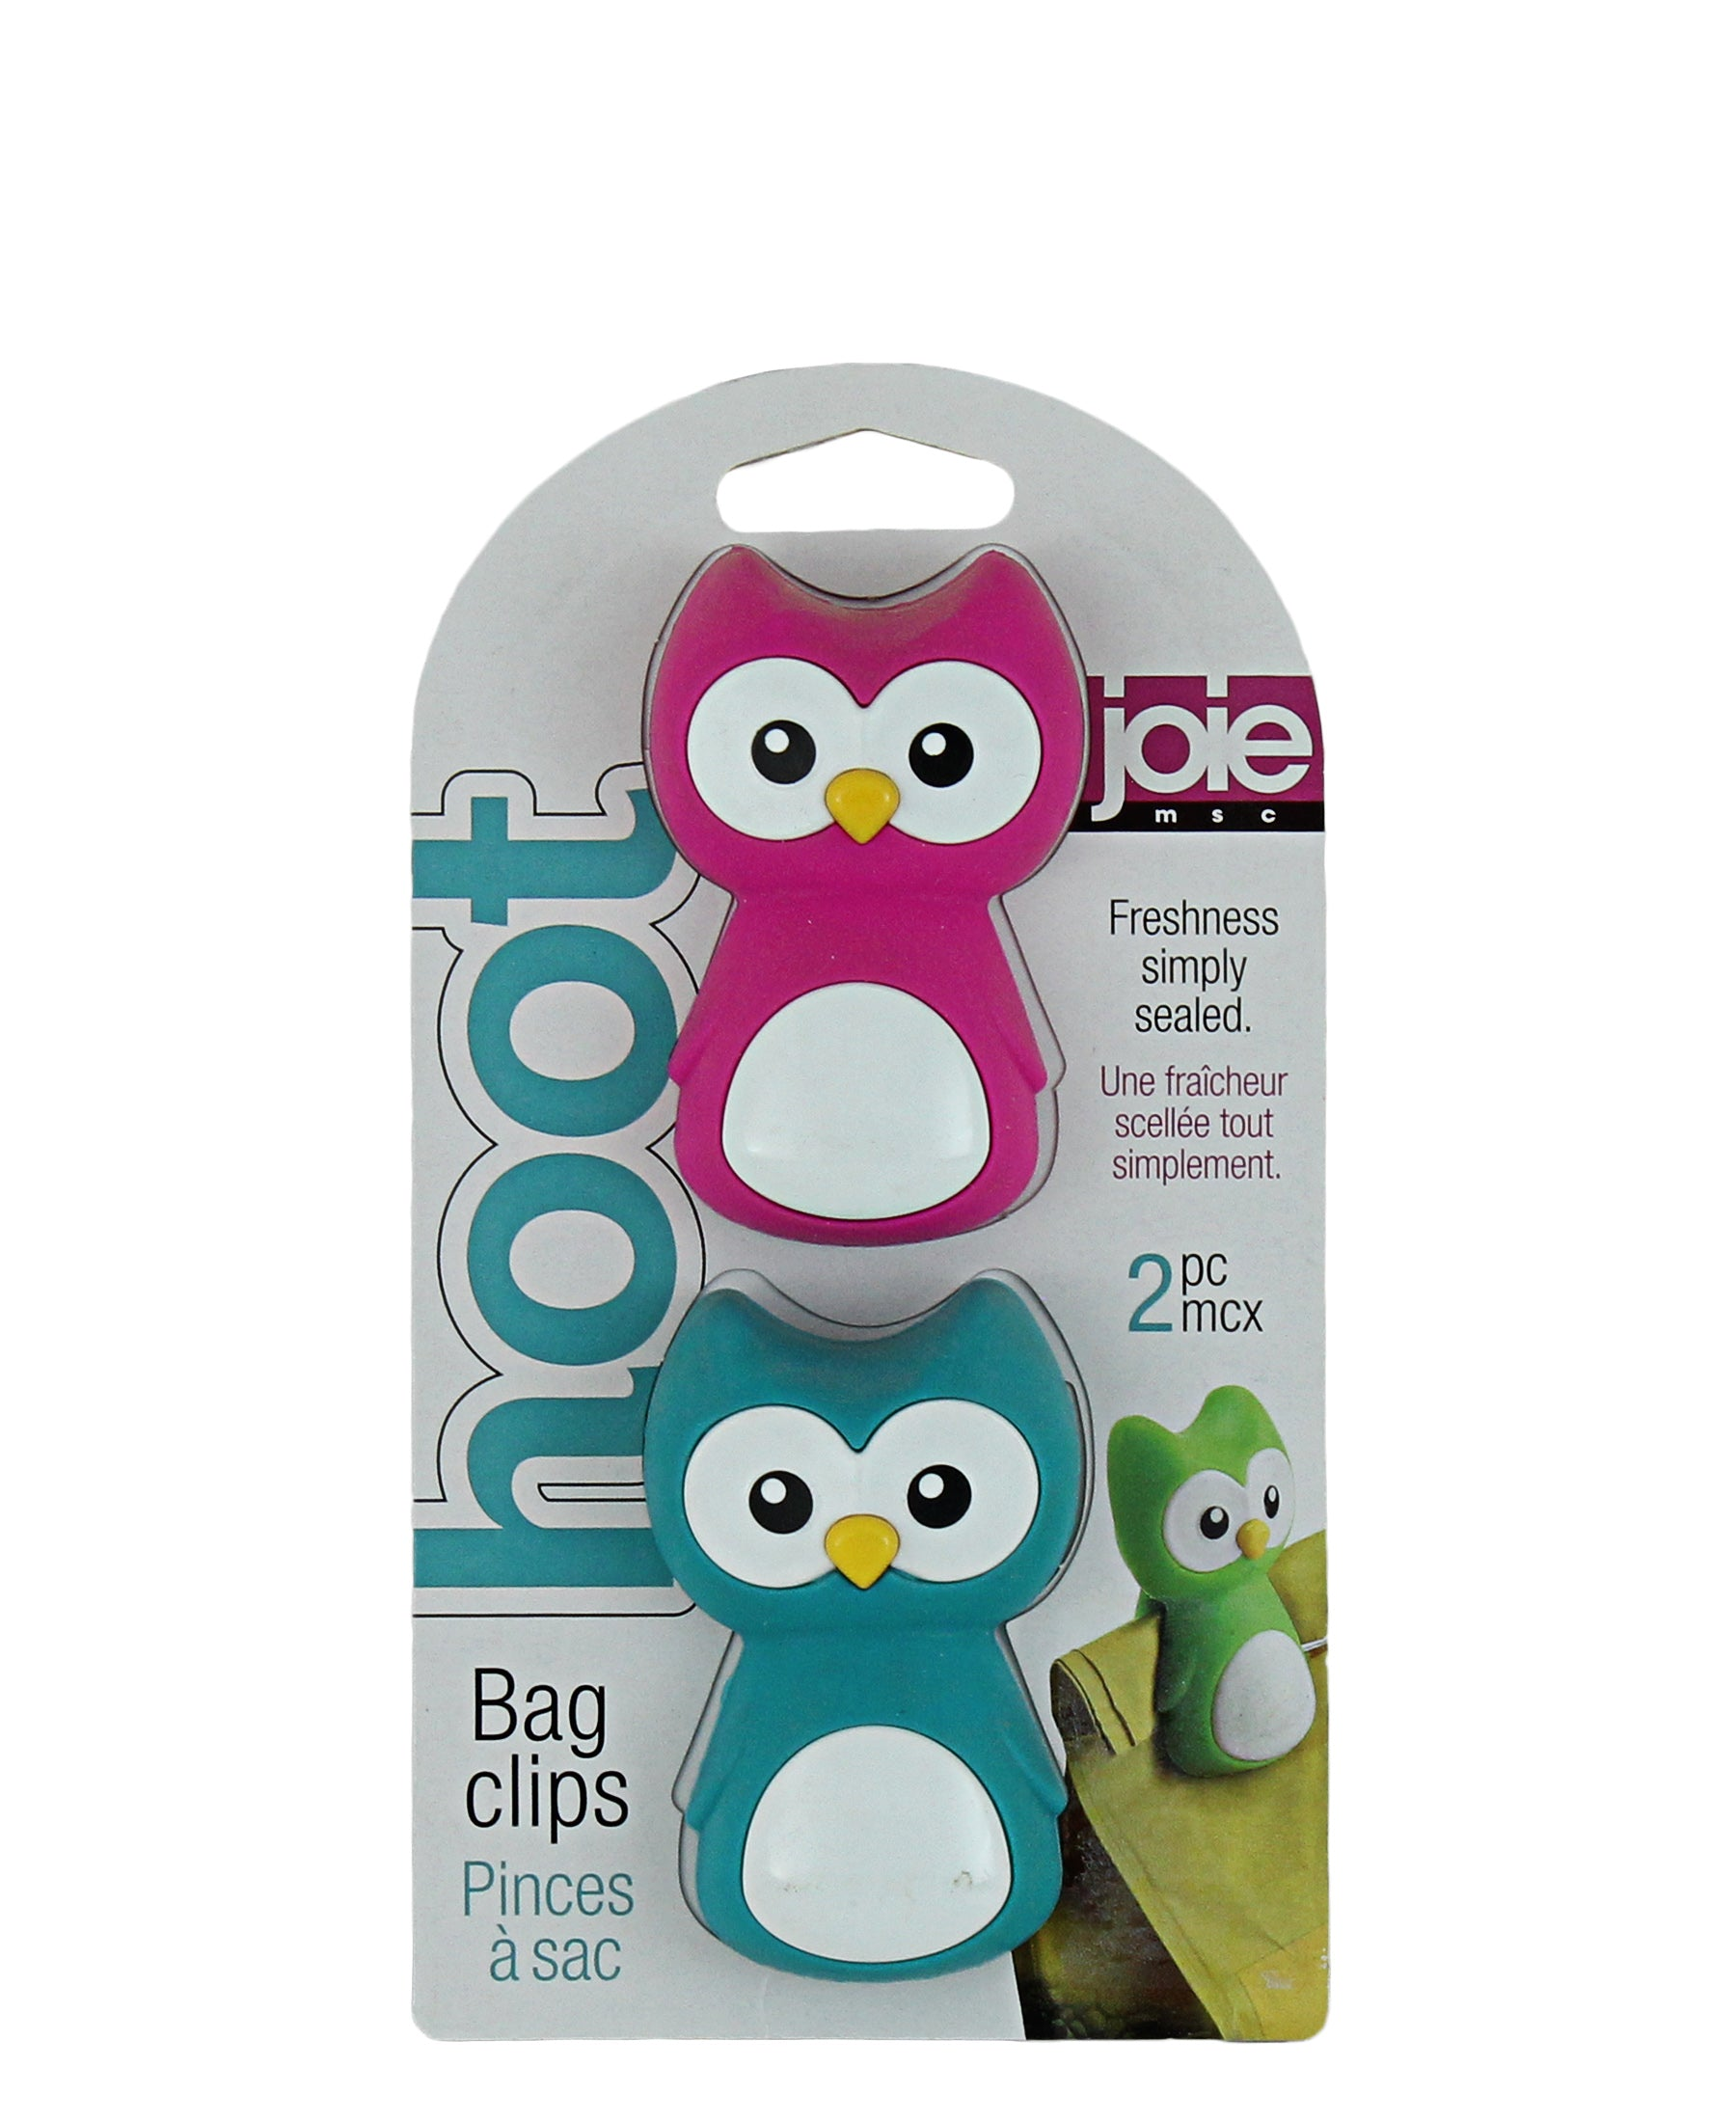 Joie Hoot Bag Clips - Pink & Blue